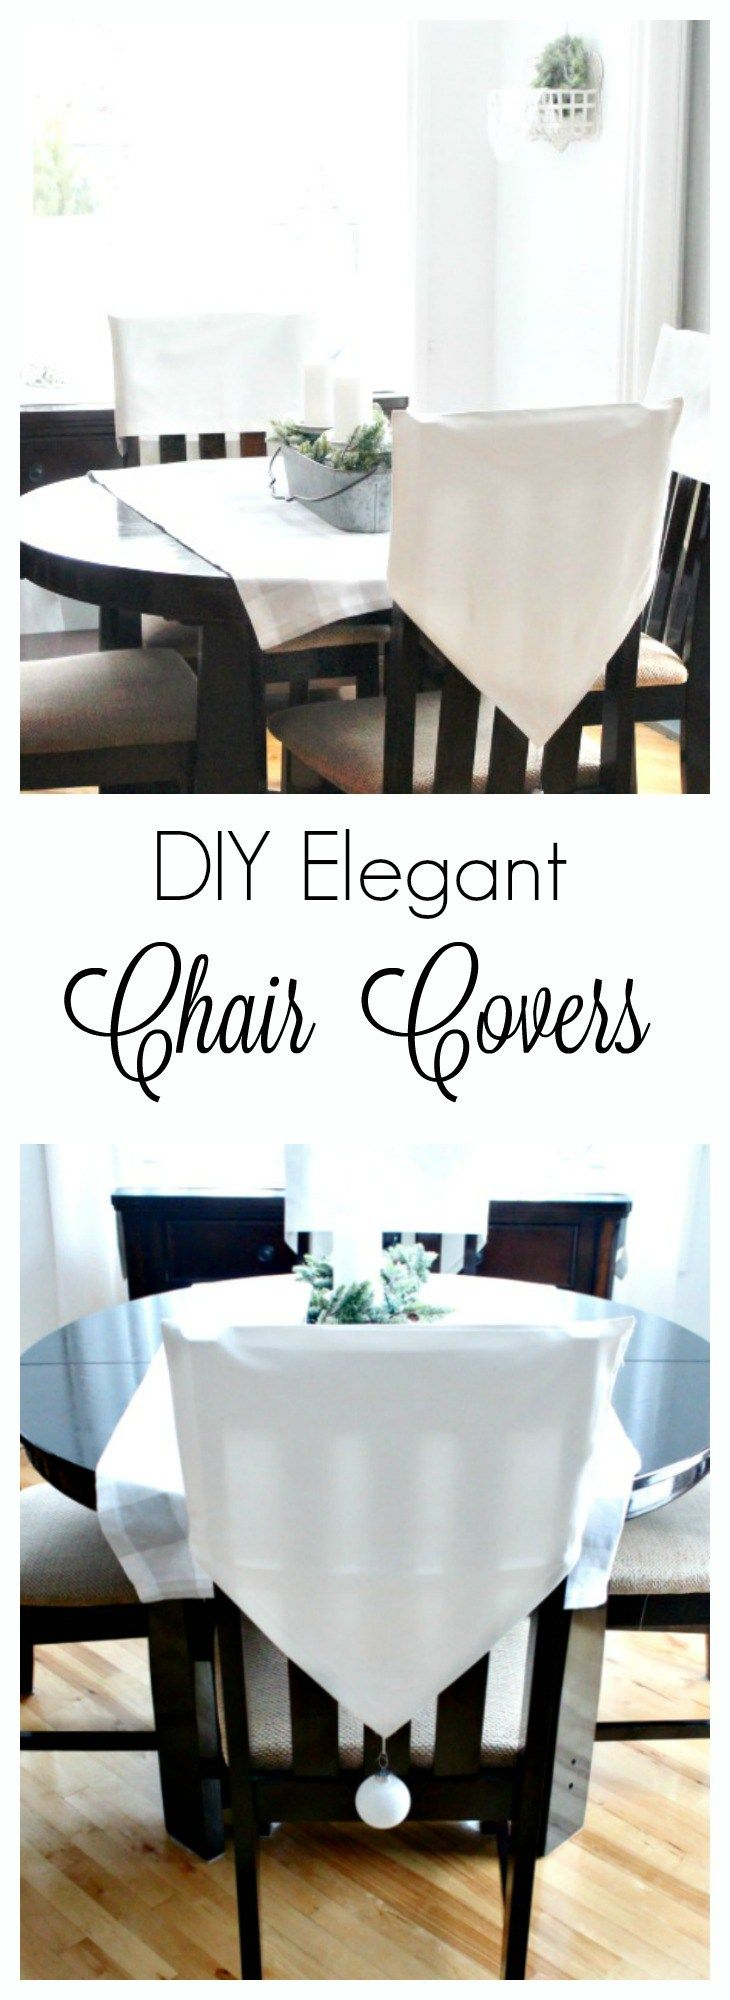 How To Make Kitchen Chair Back Covers Revolving Below 2000 Diy Perfect For Dressing Up Chairs Backs Christmas White